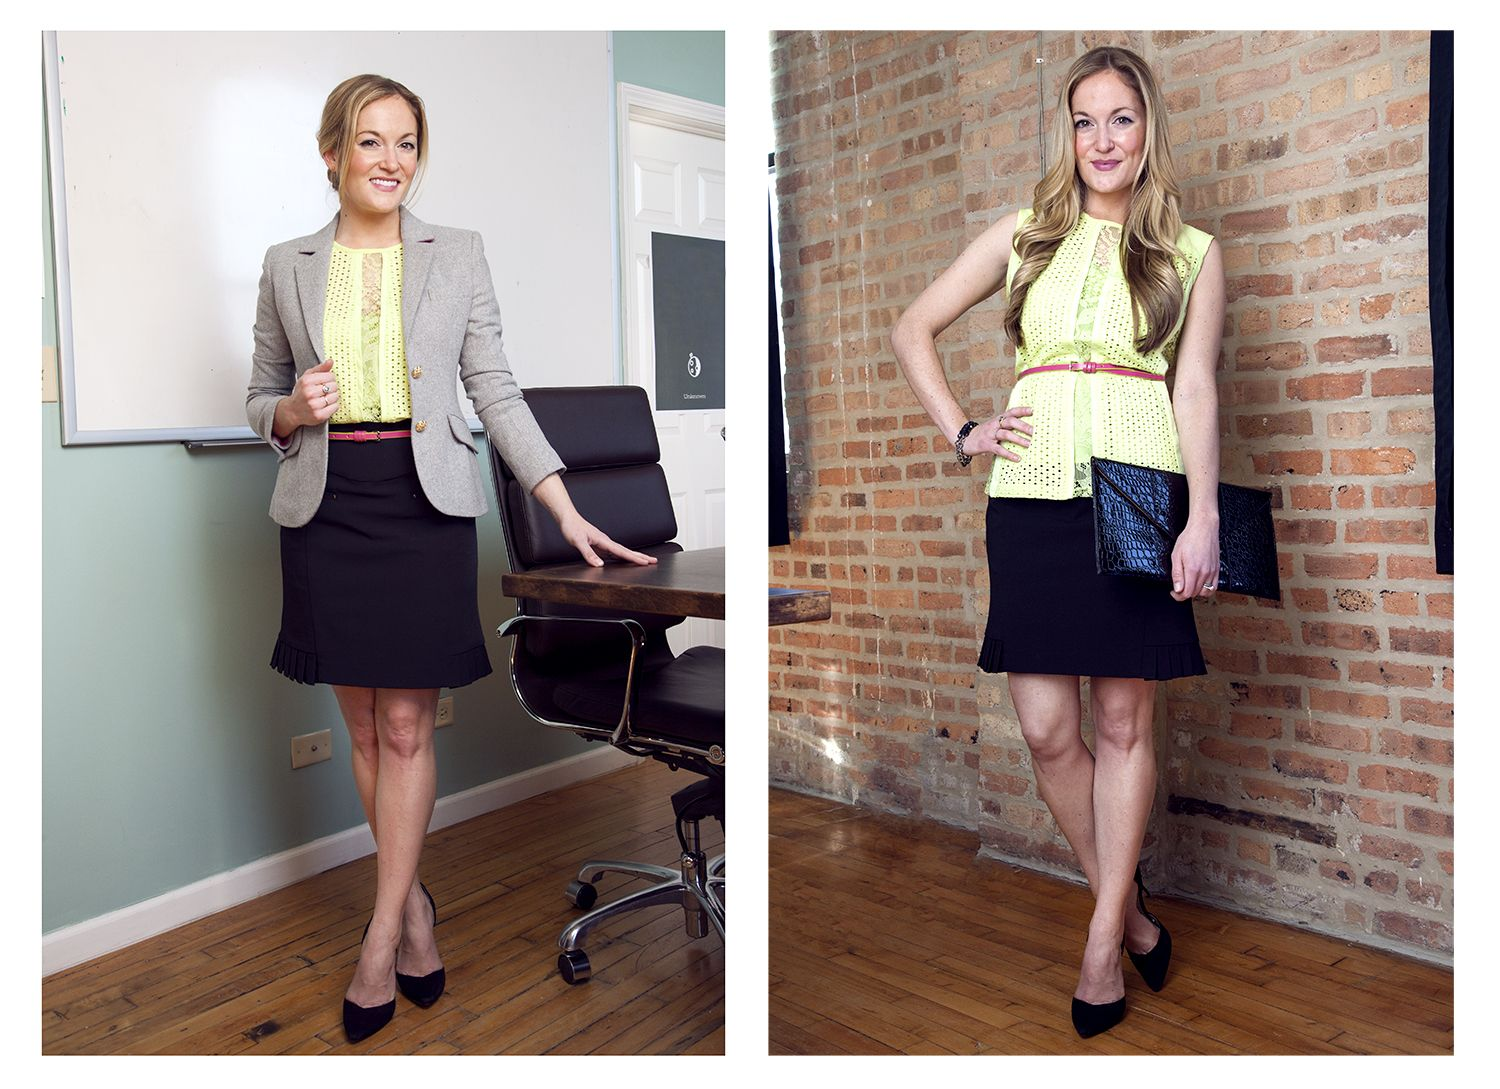 Desk-To-Dinner Looks for Spring | Beth Gets Creative with Tucking and Belting